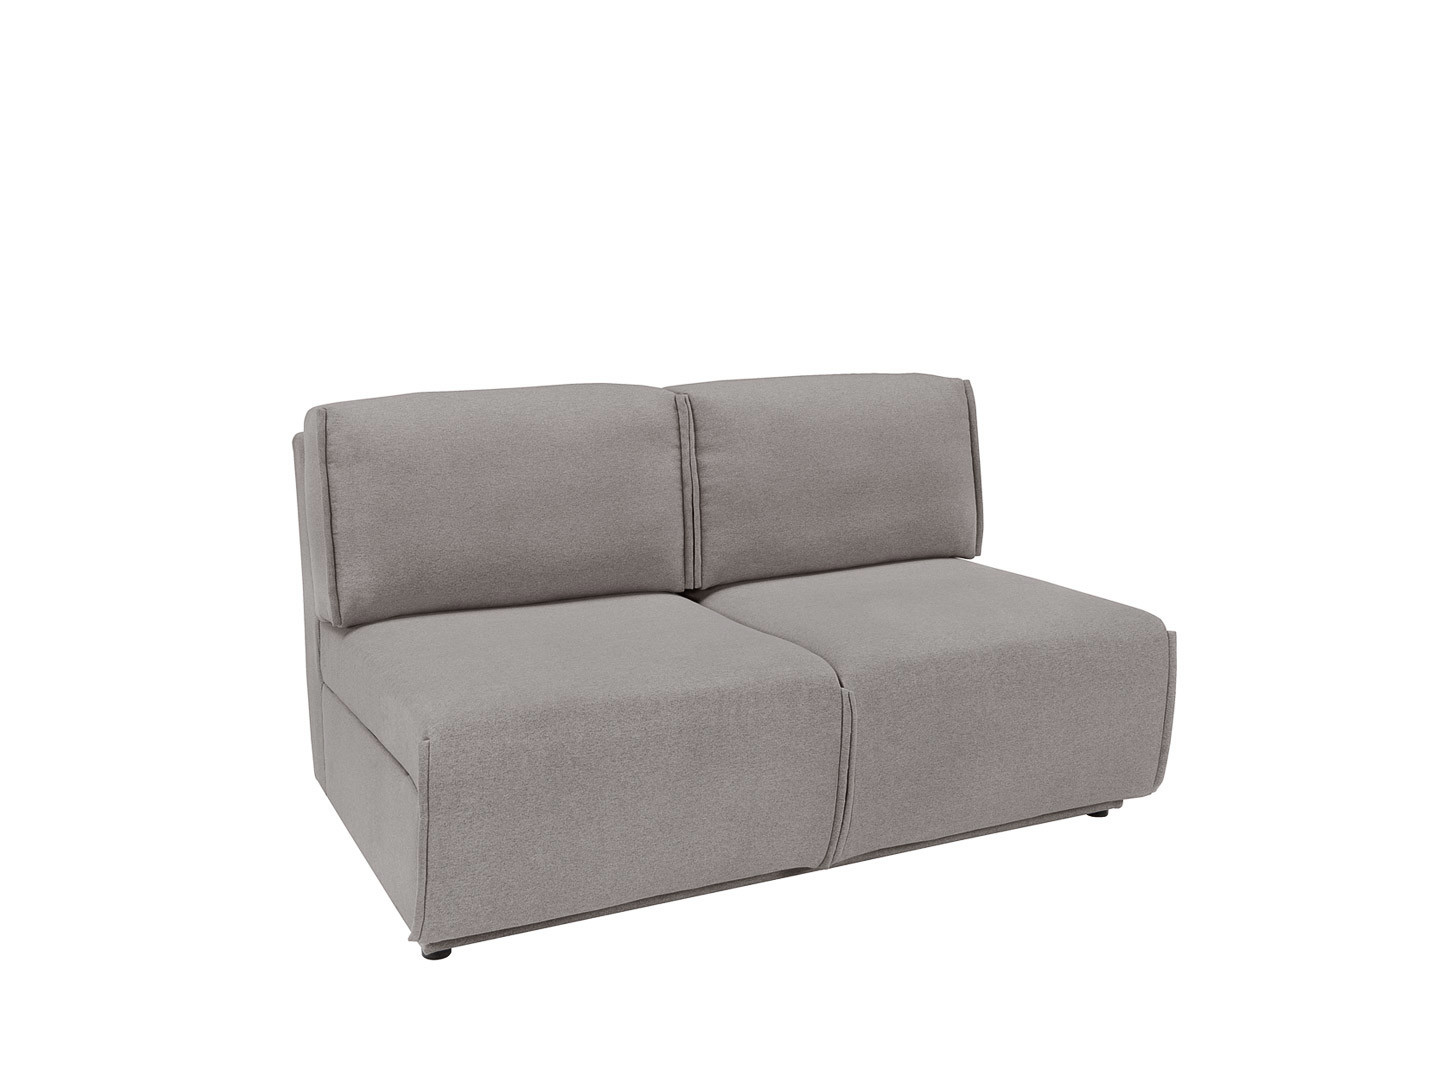 Moonly 2F Sofa modułowa